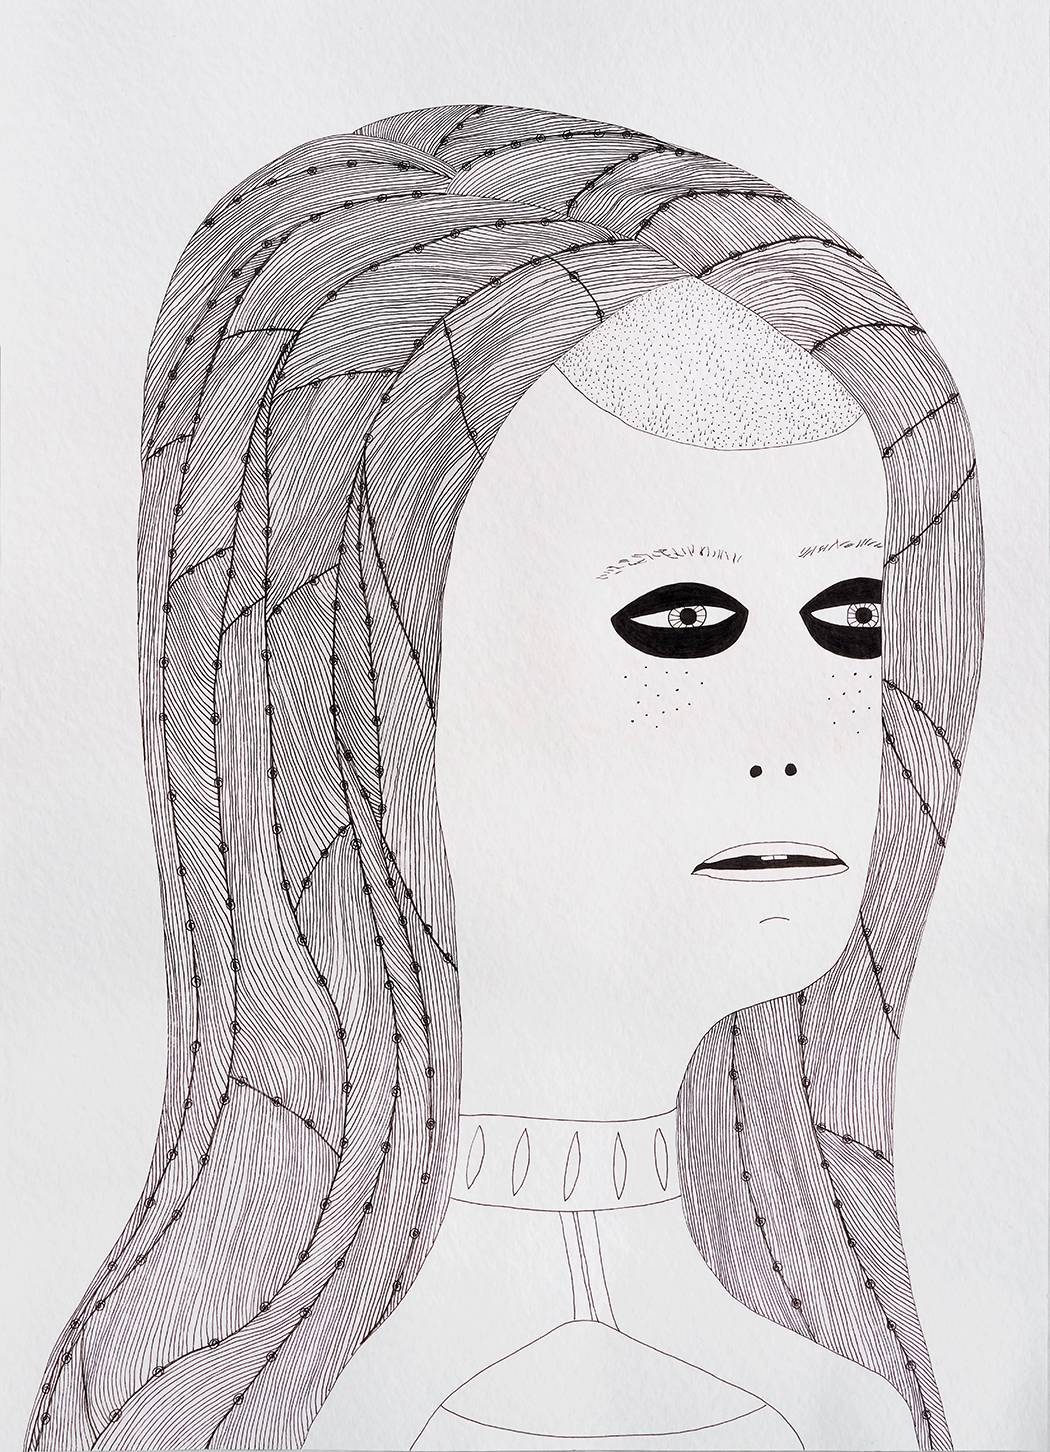 Laylah Ali. <em> Untitled</em>, 2014. Ink and pencil on paper, 31 x 22 inches (78.7 x 55.9 cm)